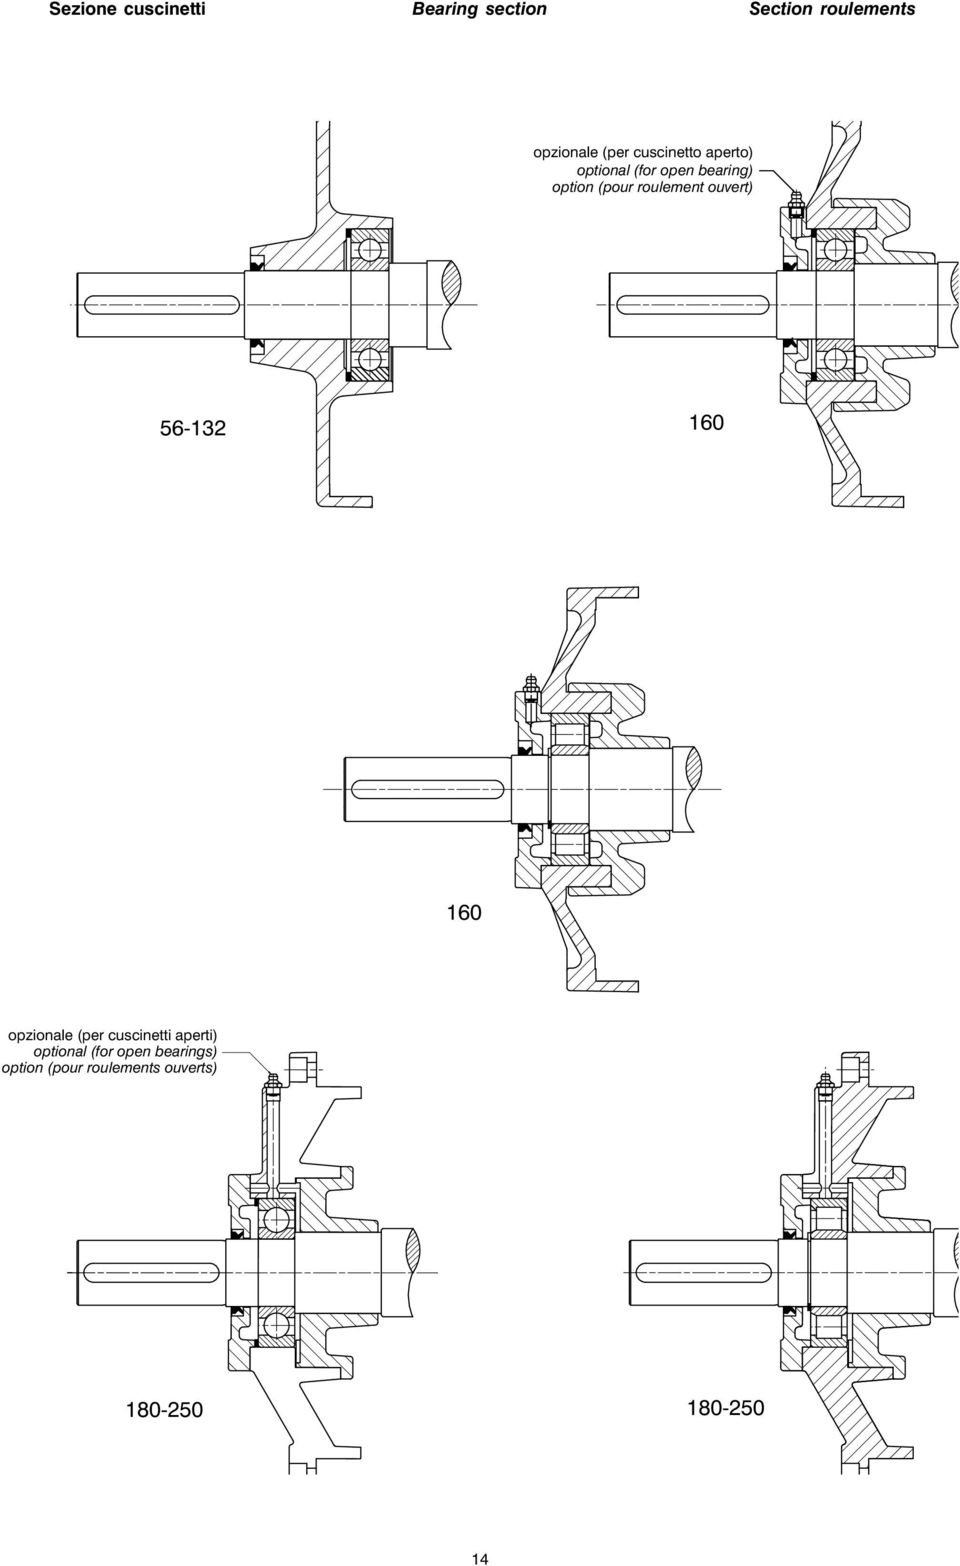 Motori elettrici antideflagranti ex d ex de explosion and for Drive end and non drive end of motor